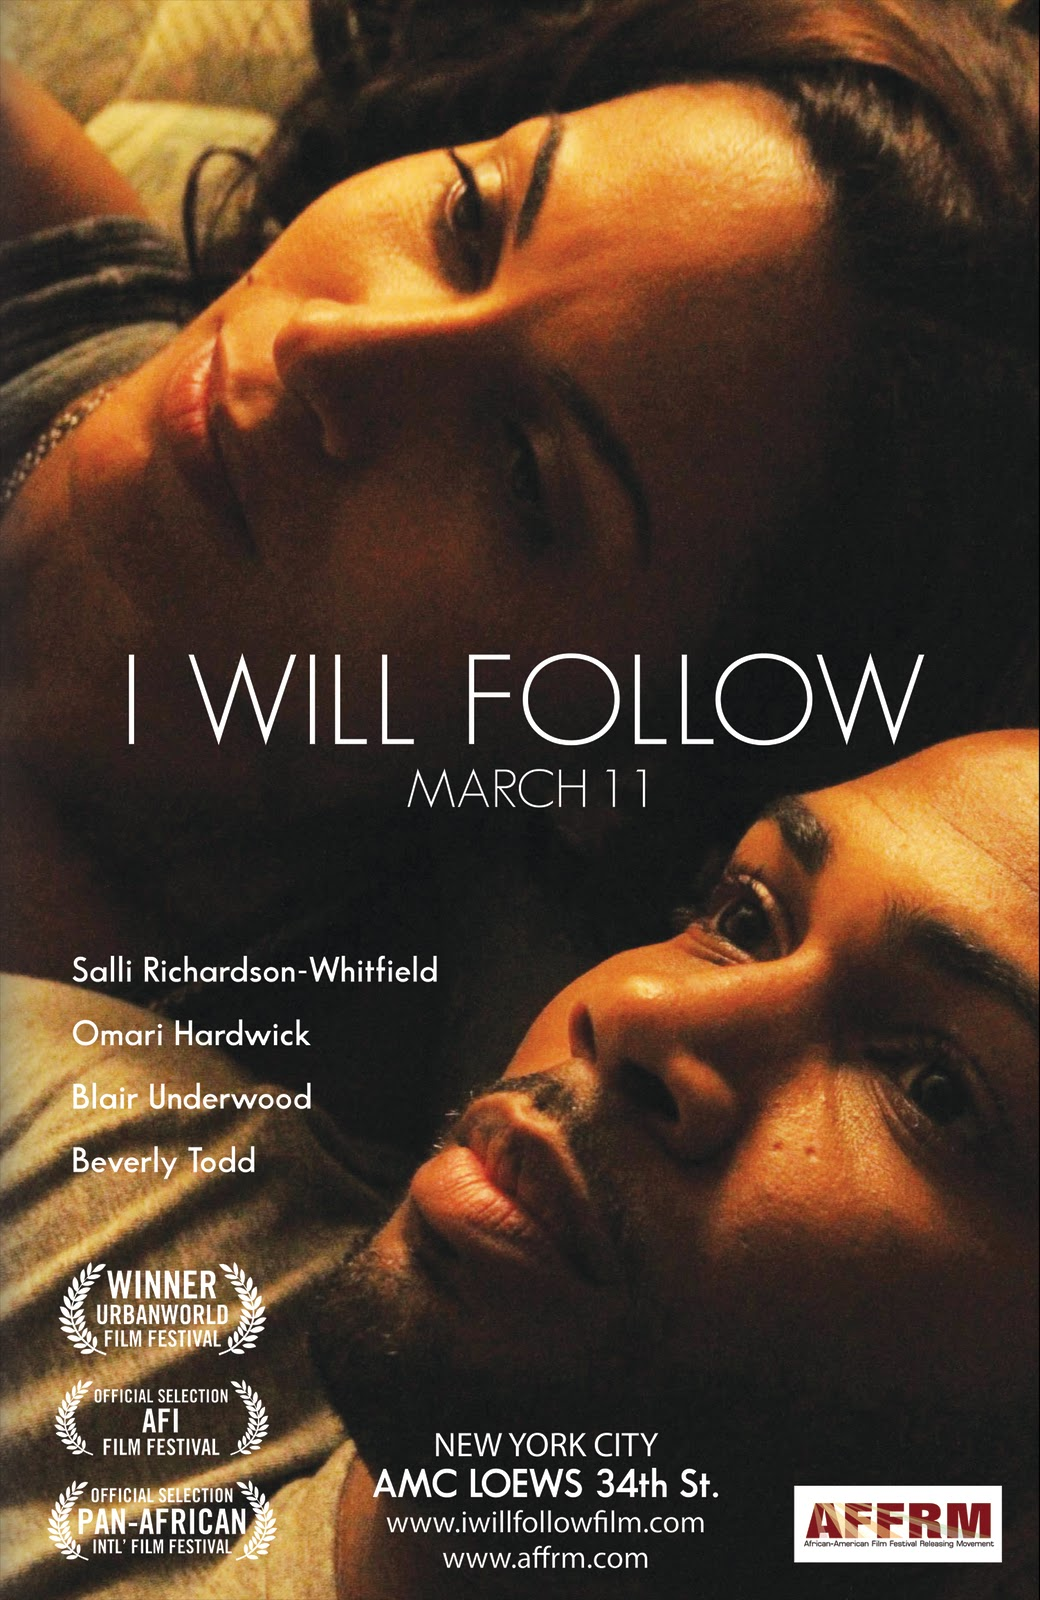 cms 4310 film analysis paper image result for i will follow movie